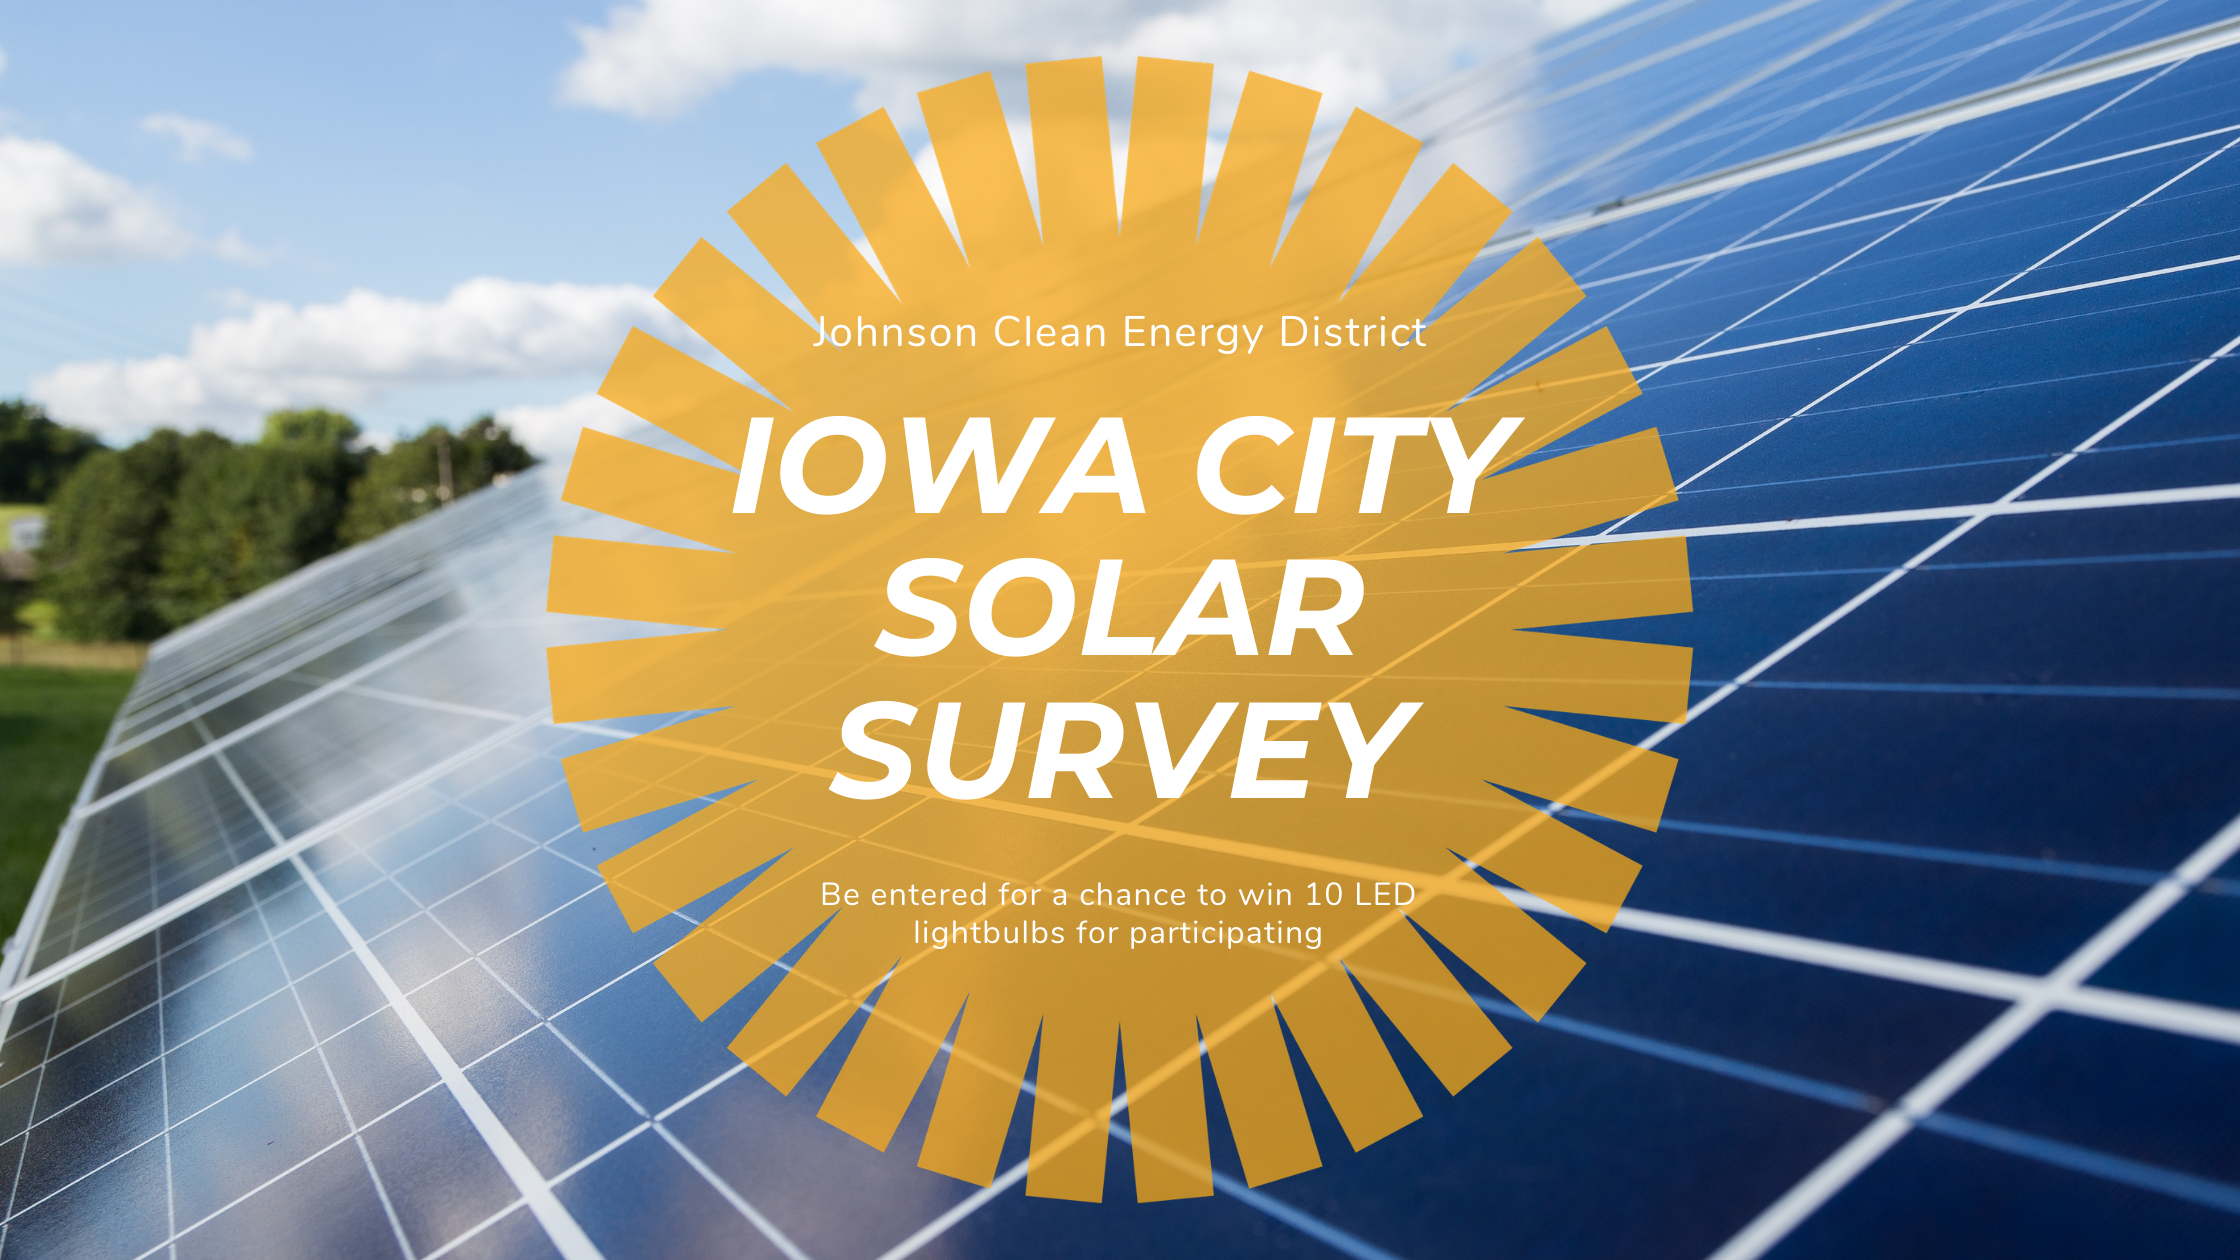 Iowa City Launches Survey Seeking Community Input on Solar